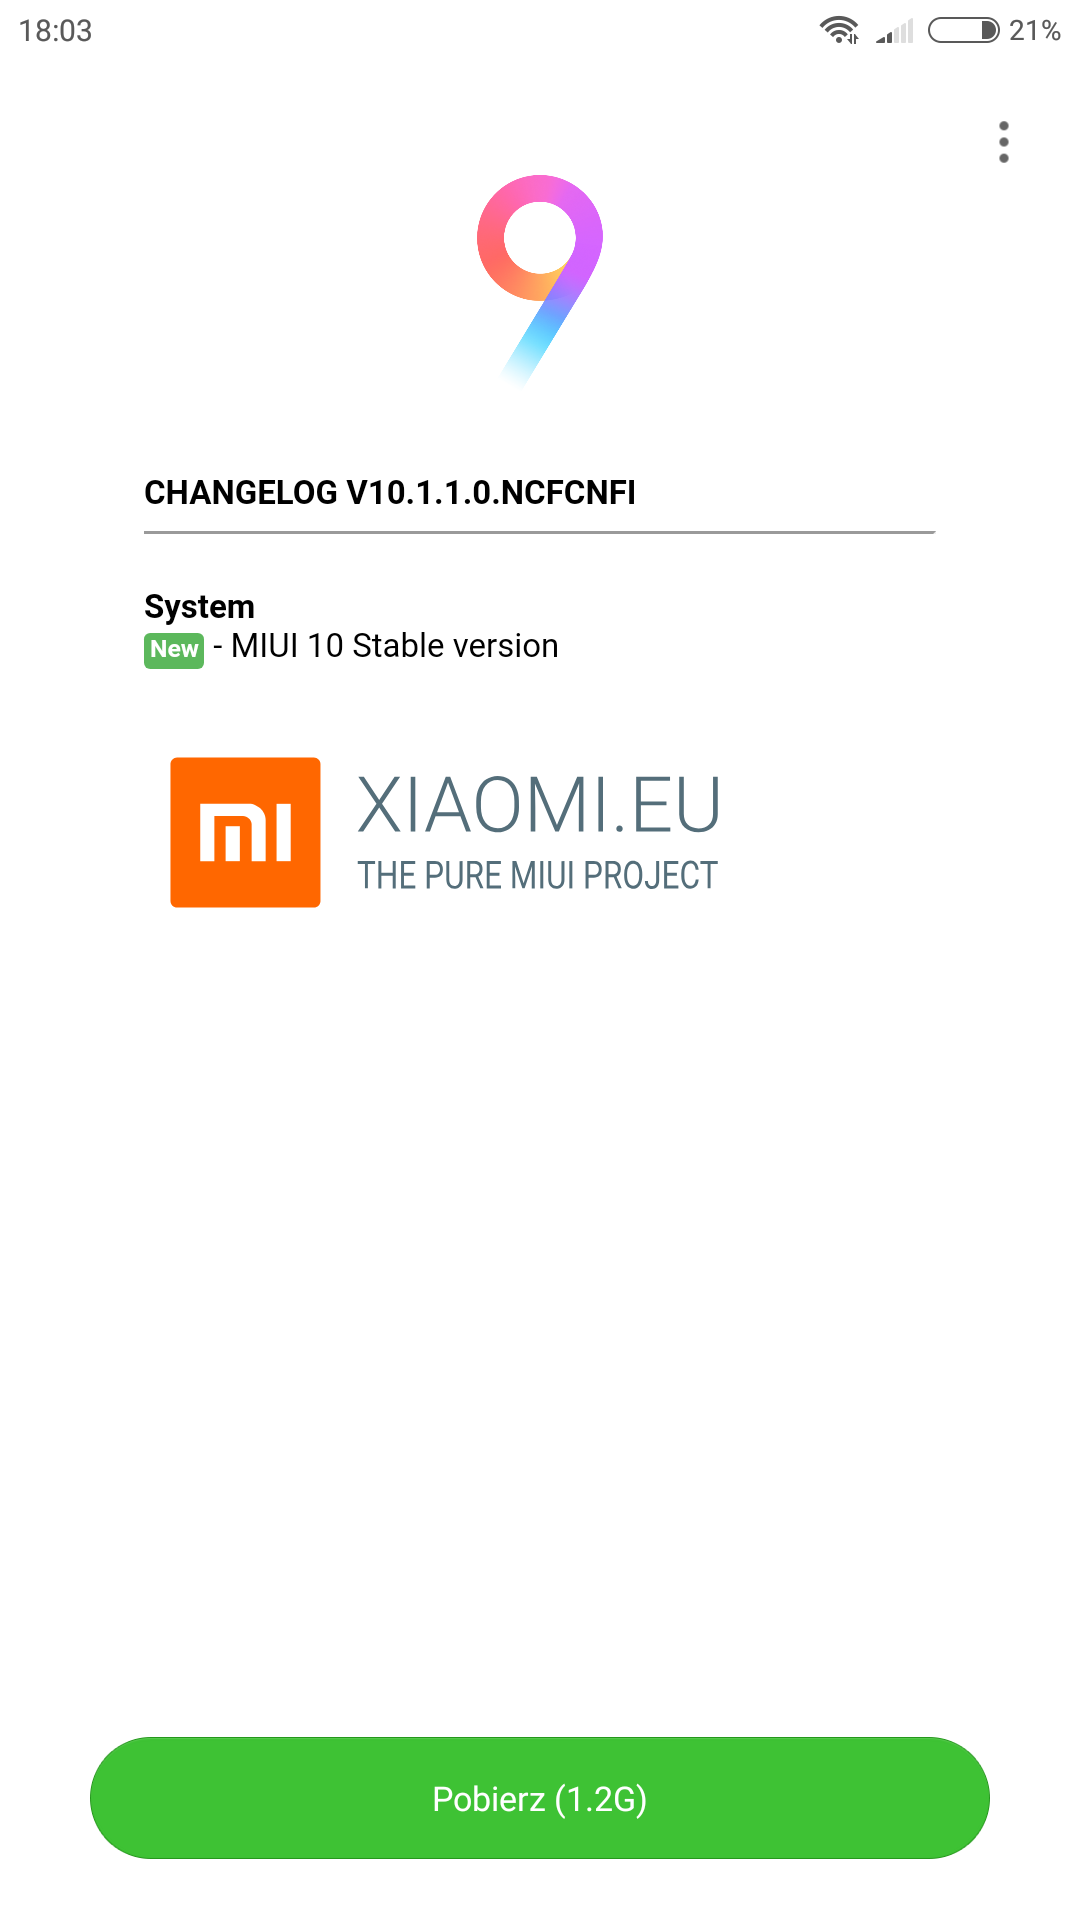 Redmi Note 4x with MIUI 9 can't upgrade to MIUI 10 | Xiaomi